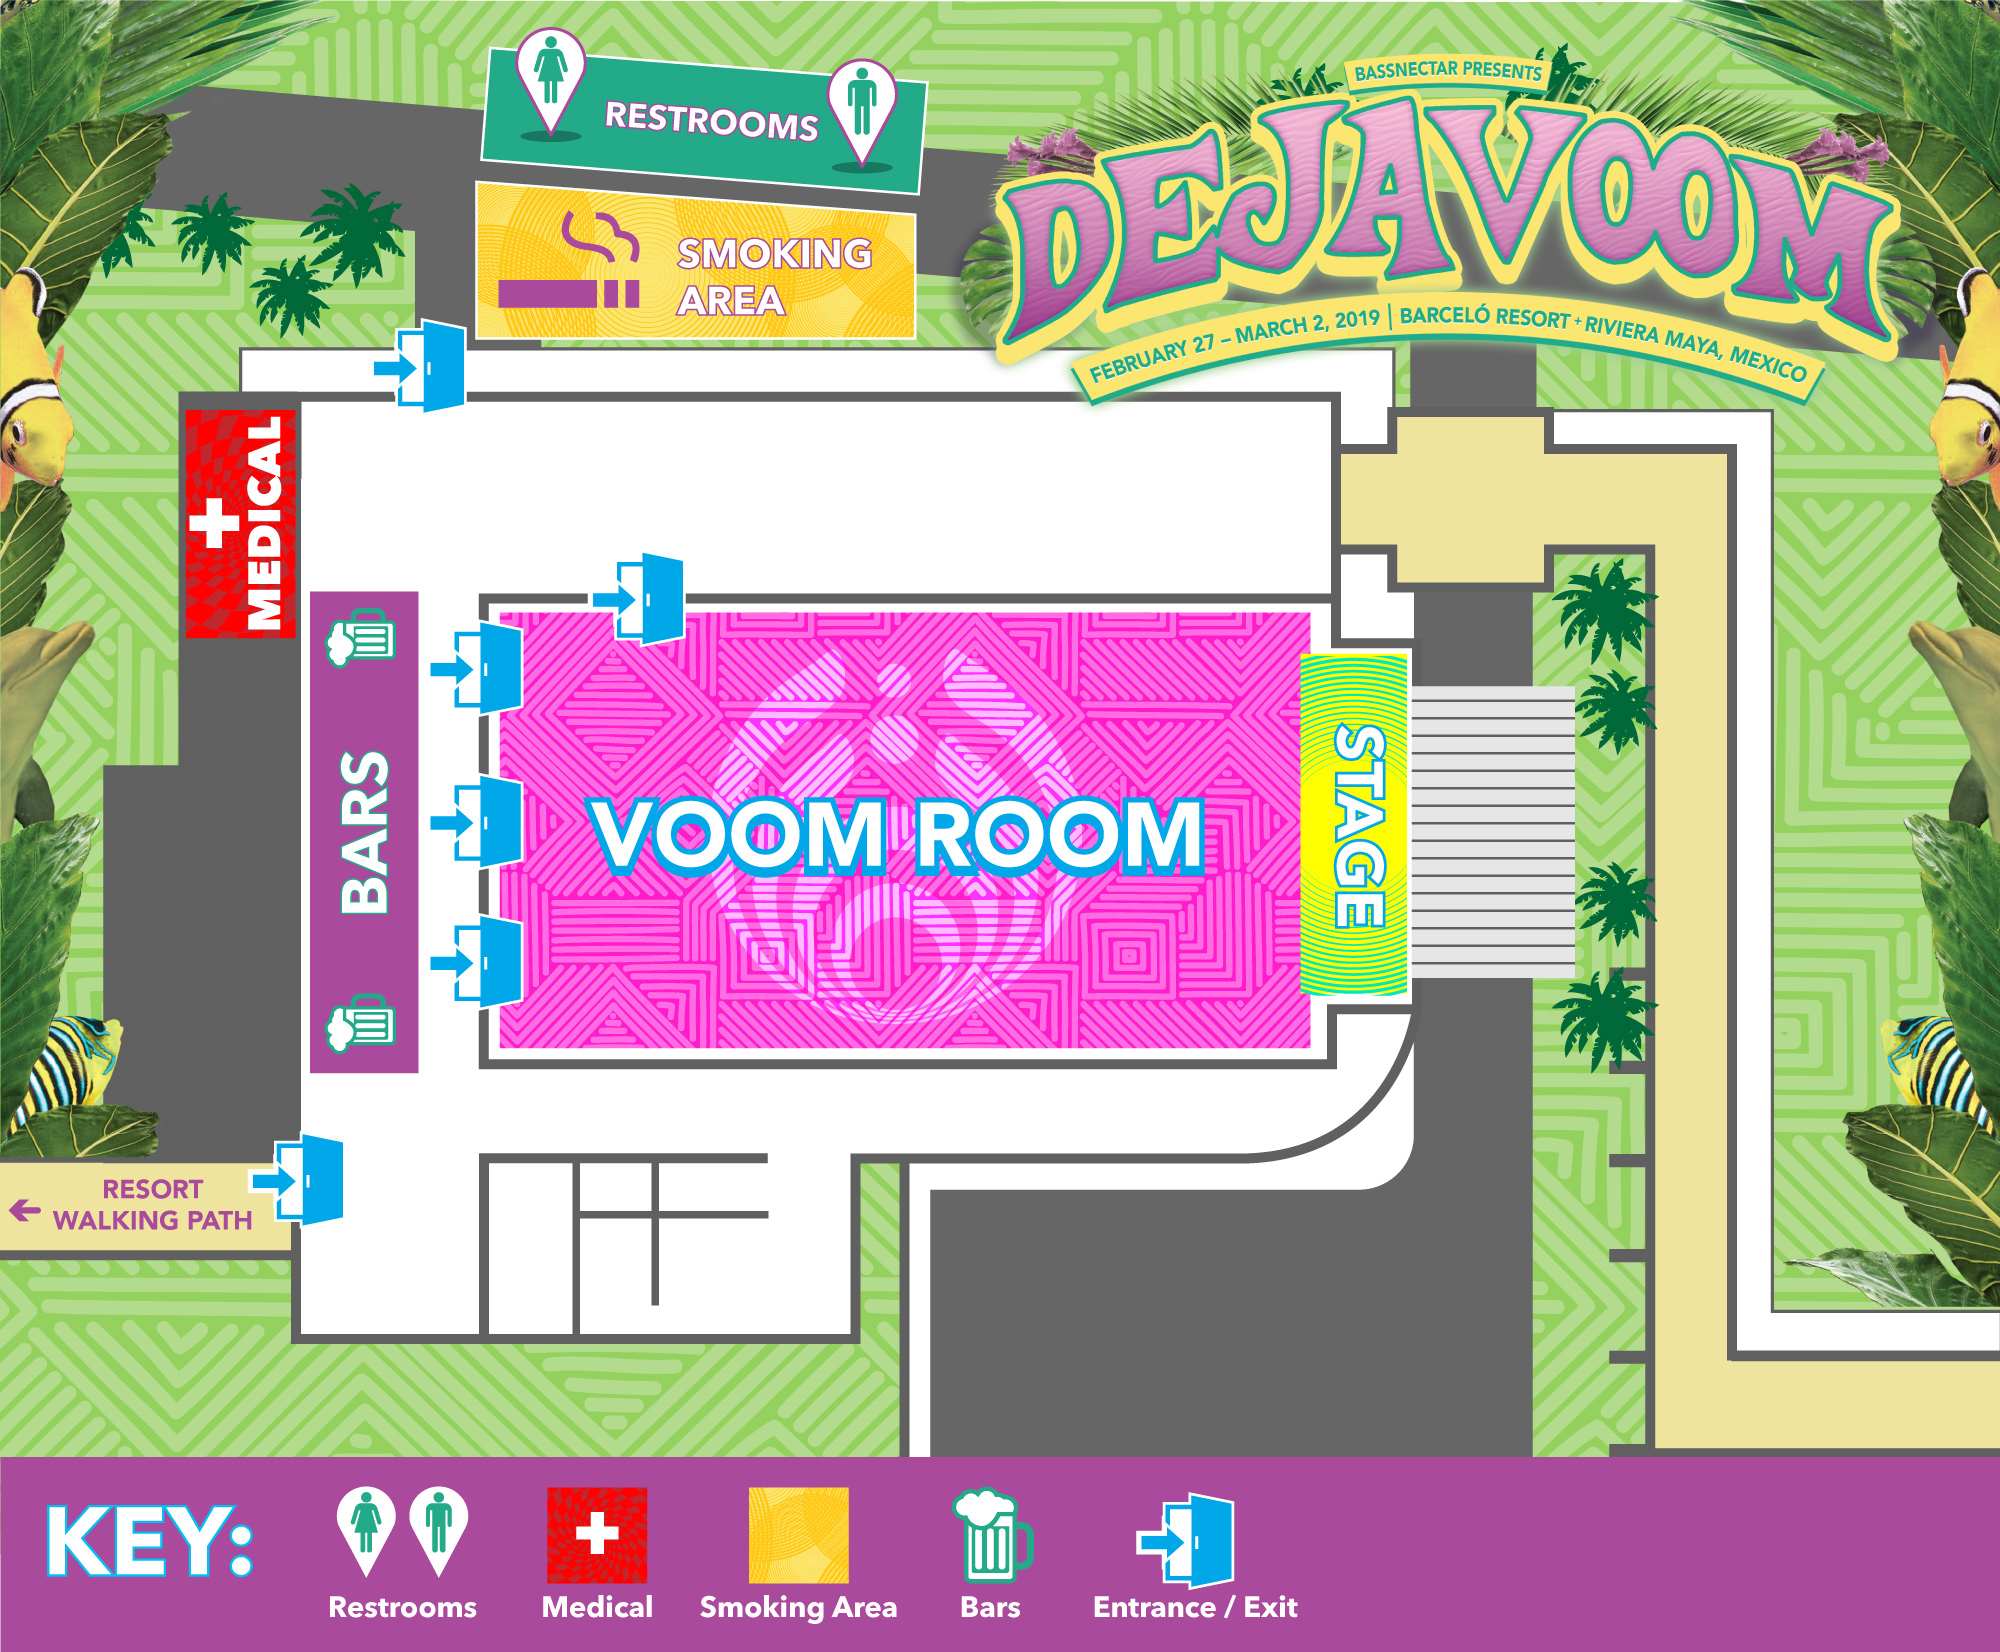 Deja Voom Map - Voom Room